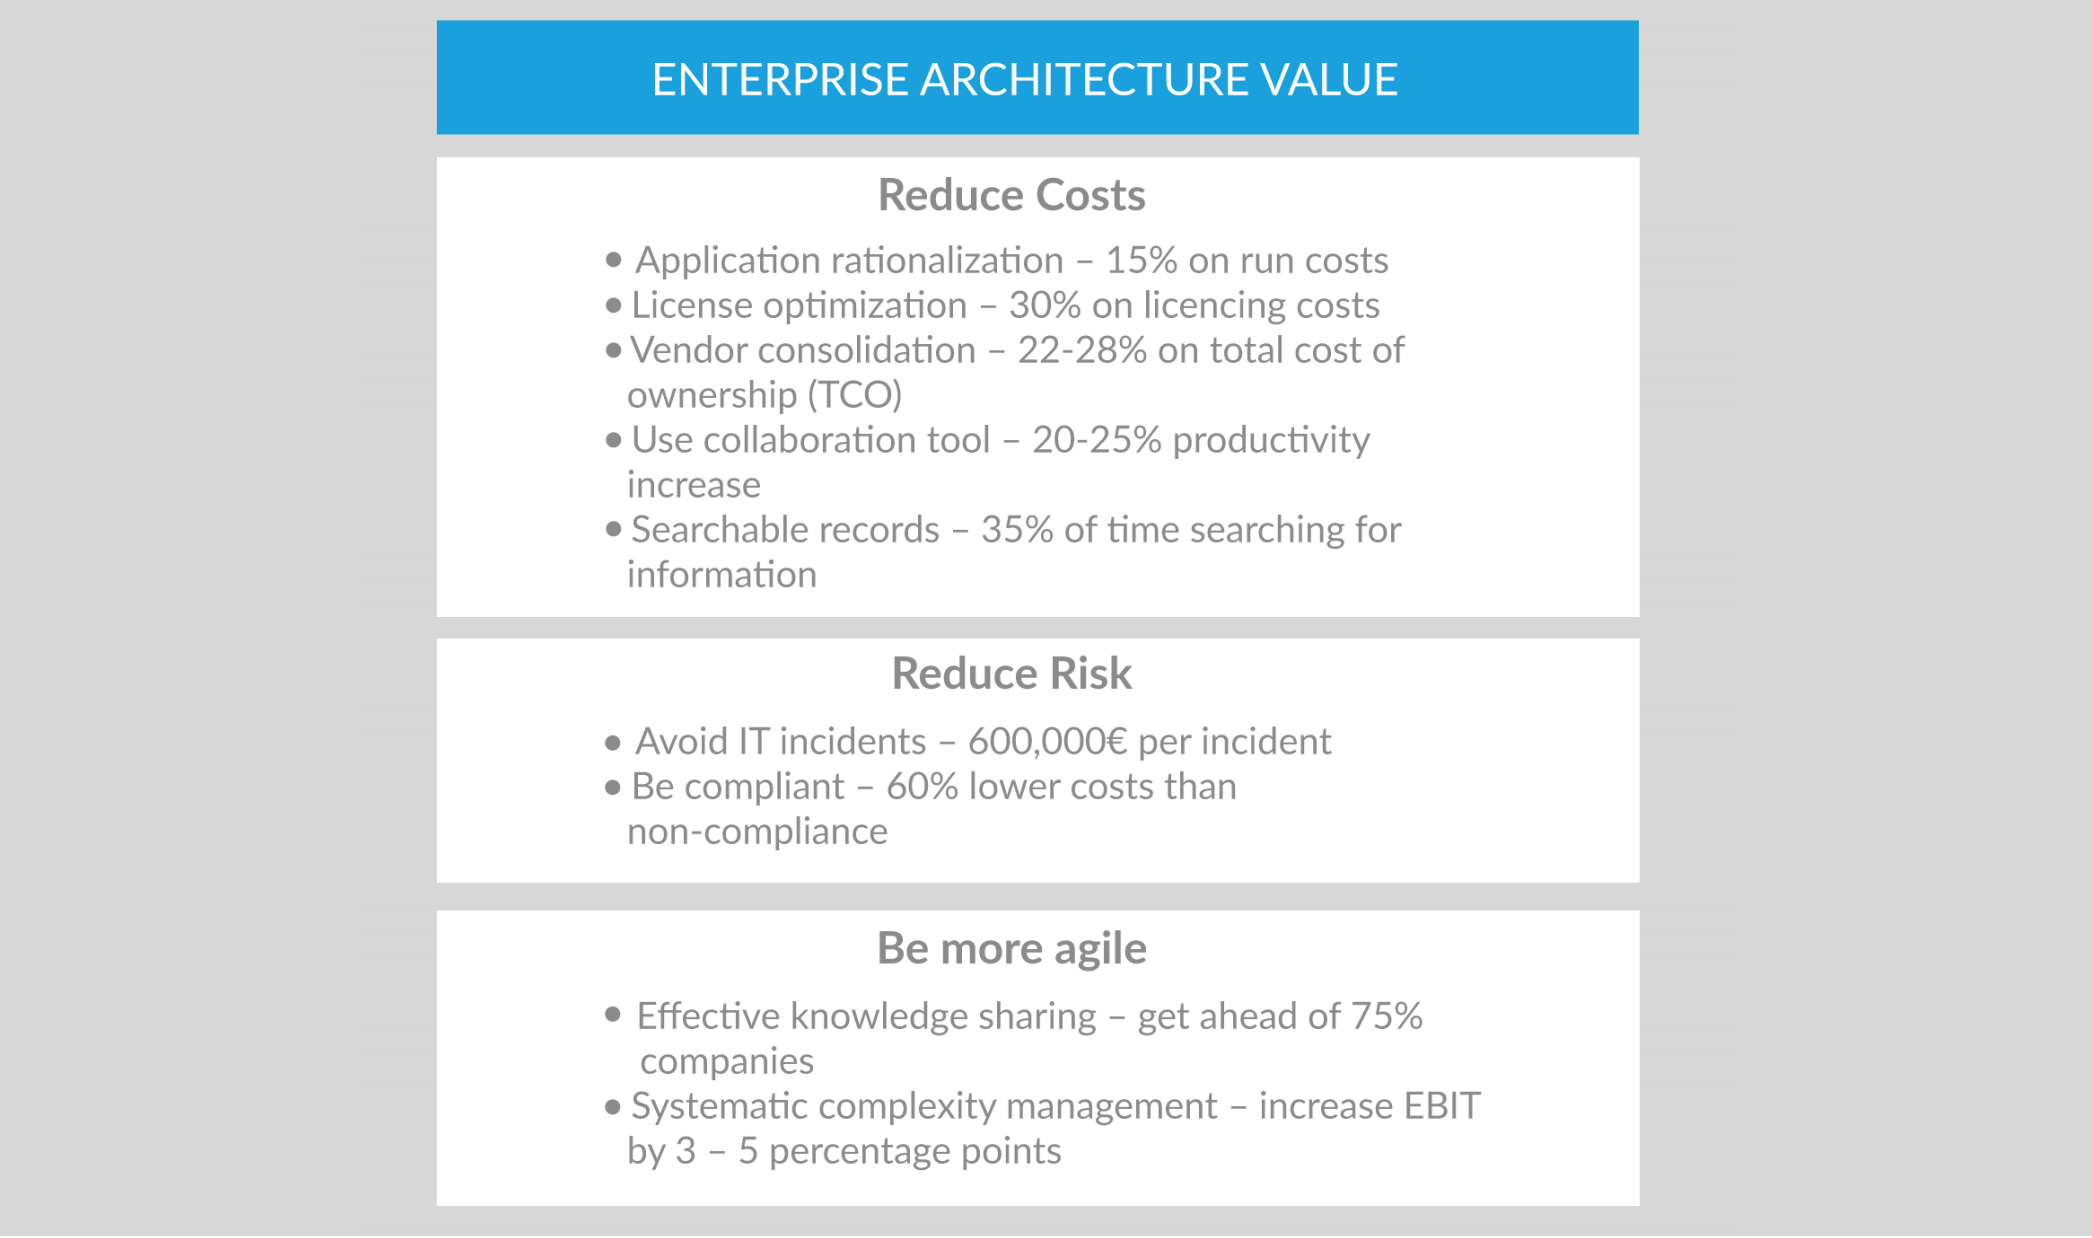 Enterprise Architecture Value